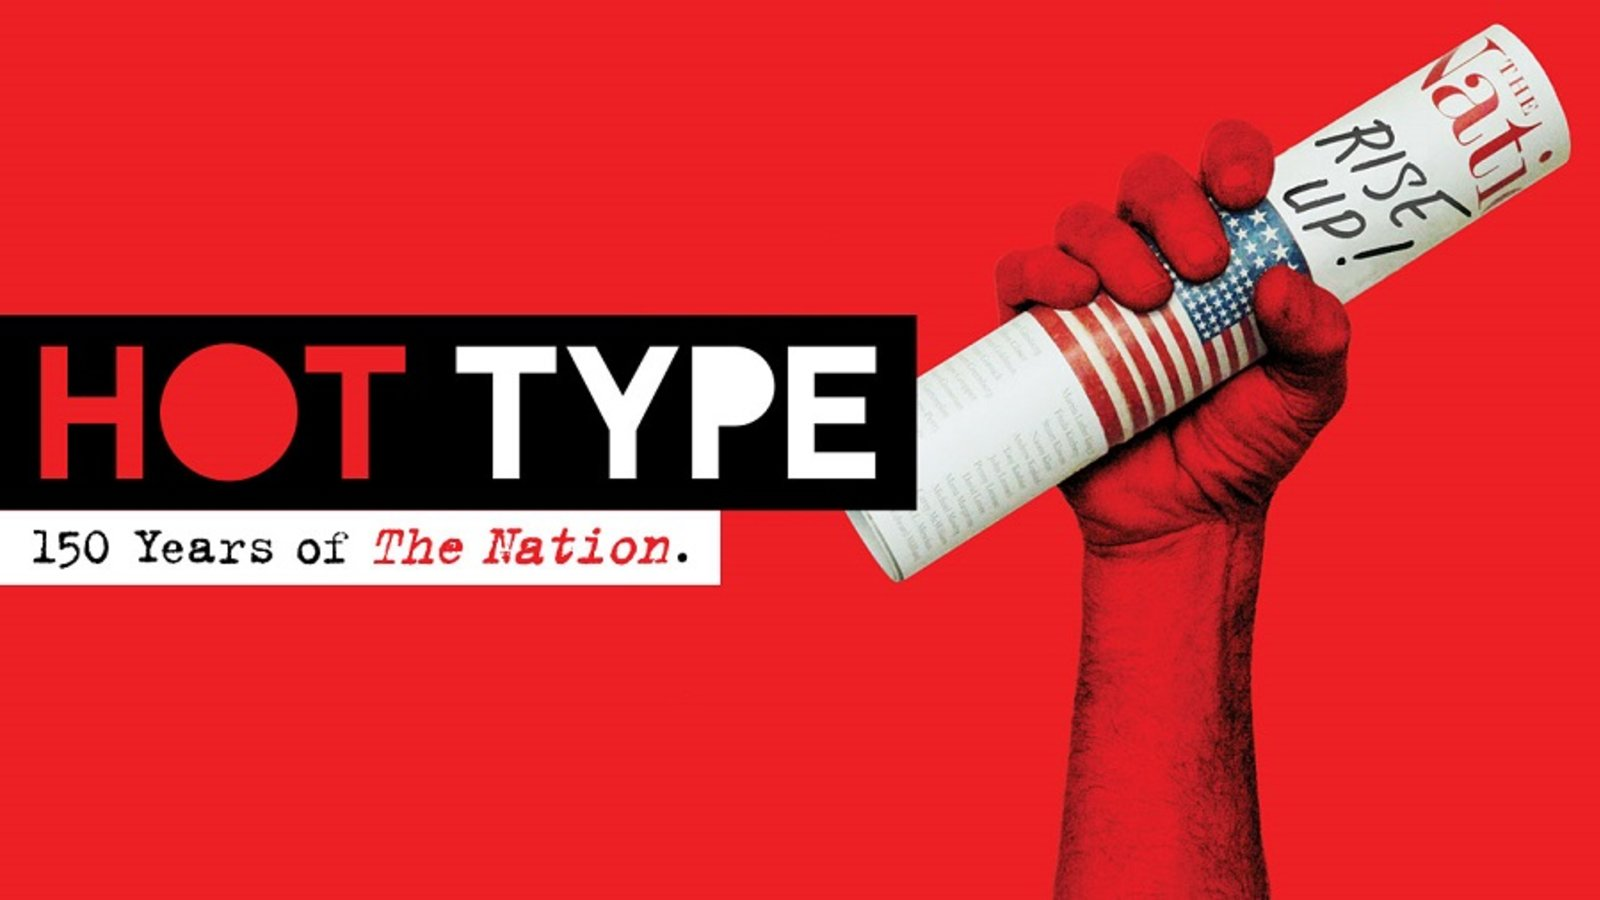 Hot Type - 150 Years Of The Nation Magazine